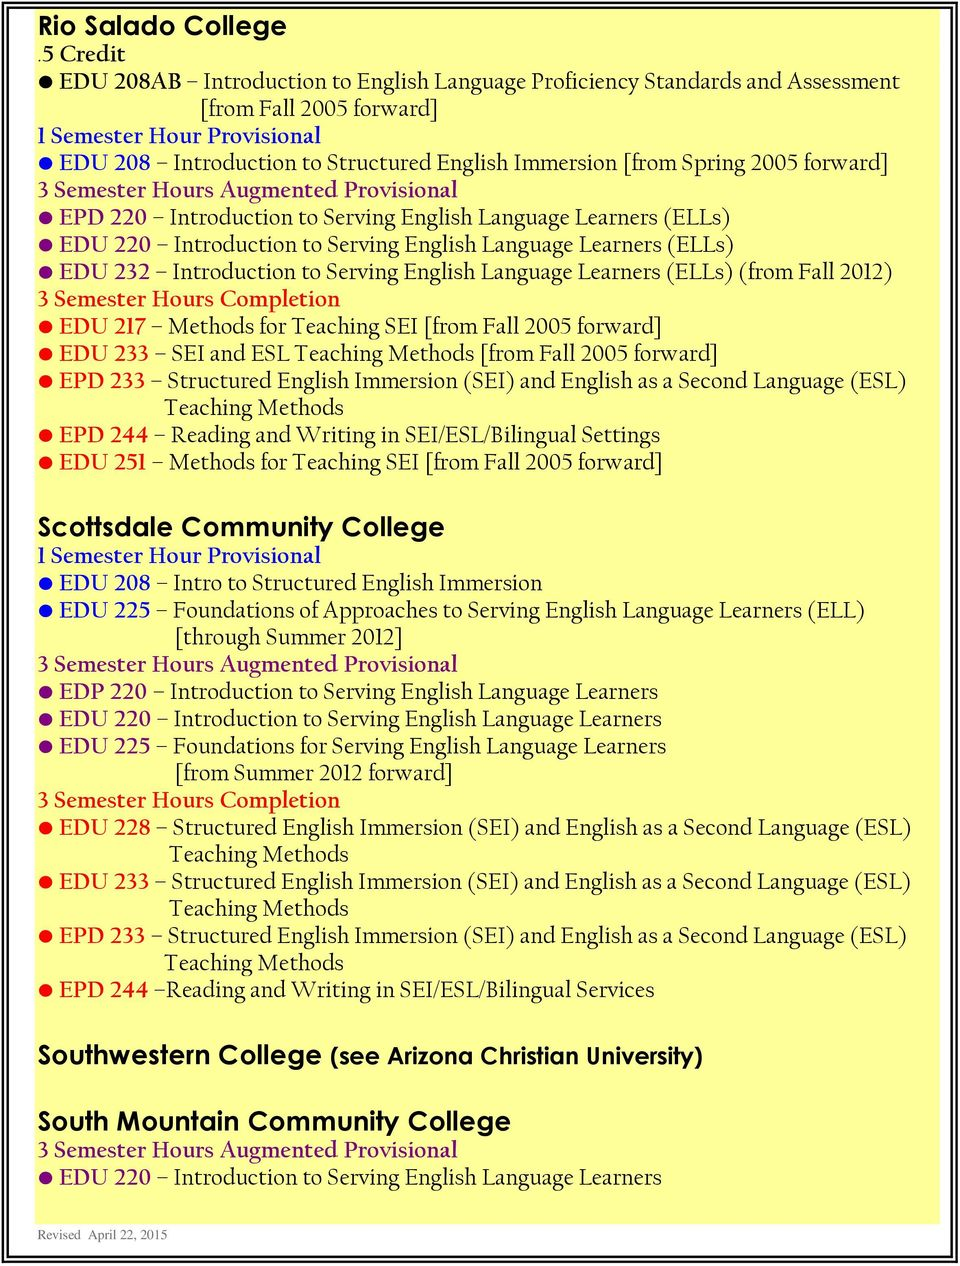 220 Introduction to Serving English Language Learners (ELLs) EDU 220 Introduction to Serving English Language Learners (ELLs) EDU 232 Introduction to Serving English Language Learners (ELLs) (from